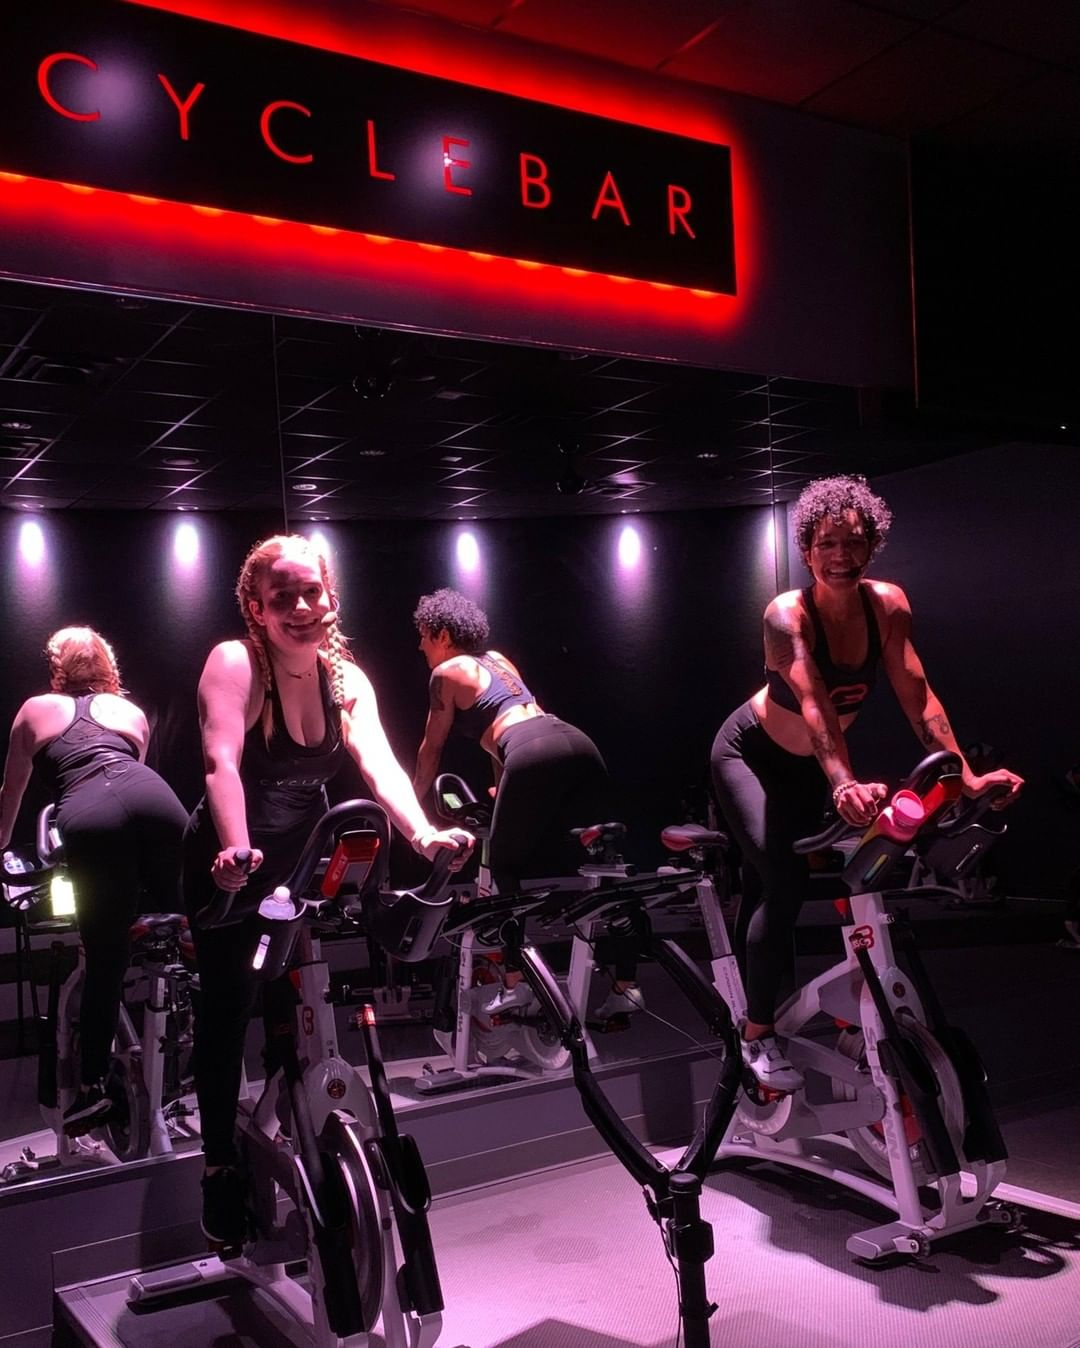 CycleBar Among First to Install Innovative Air Purifier to Address COVID-19